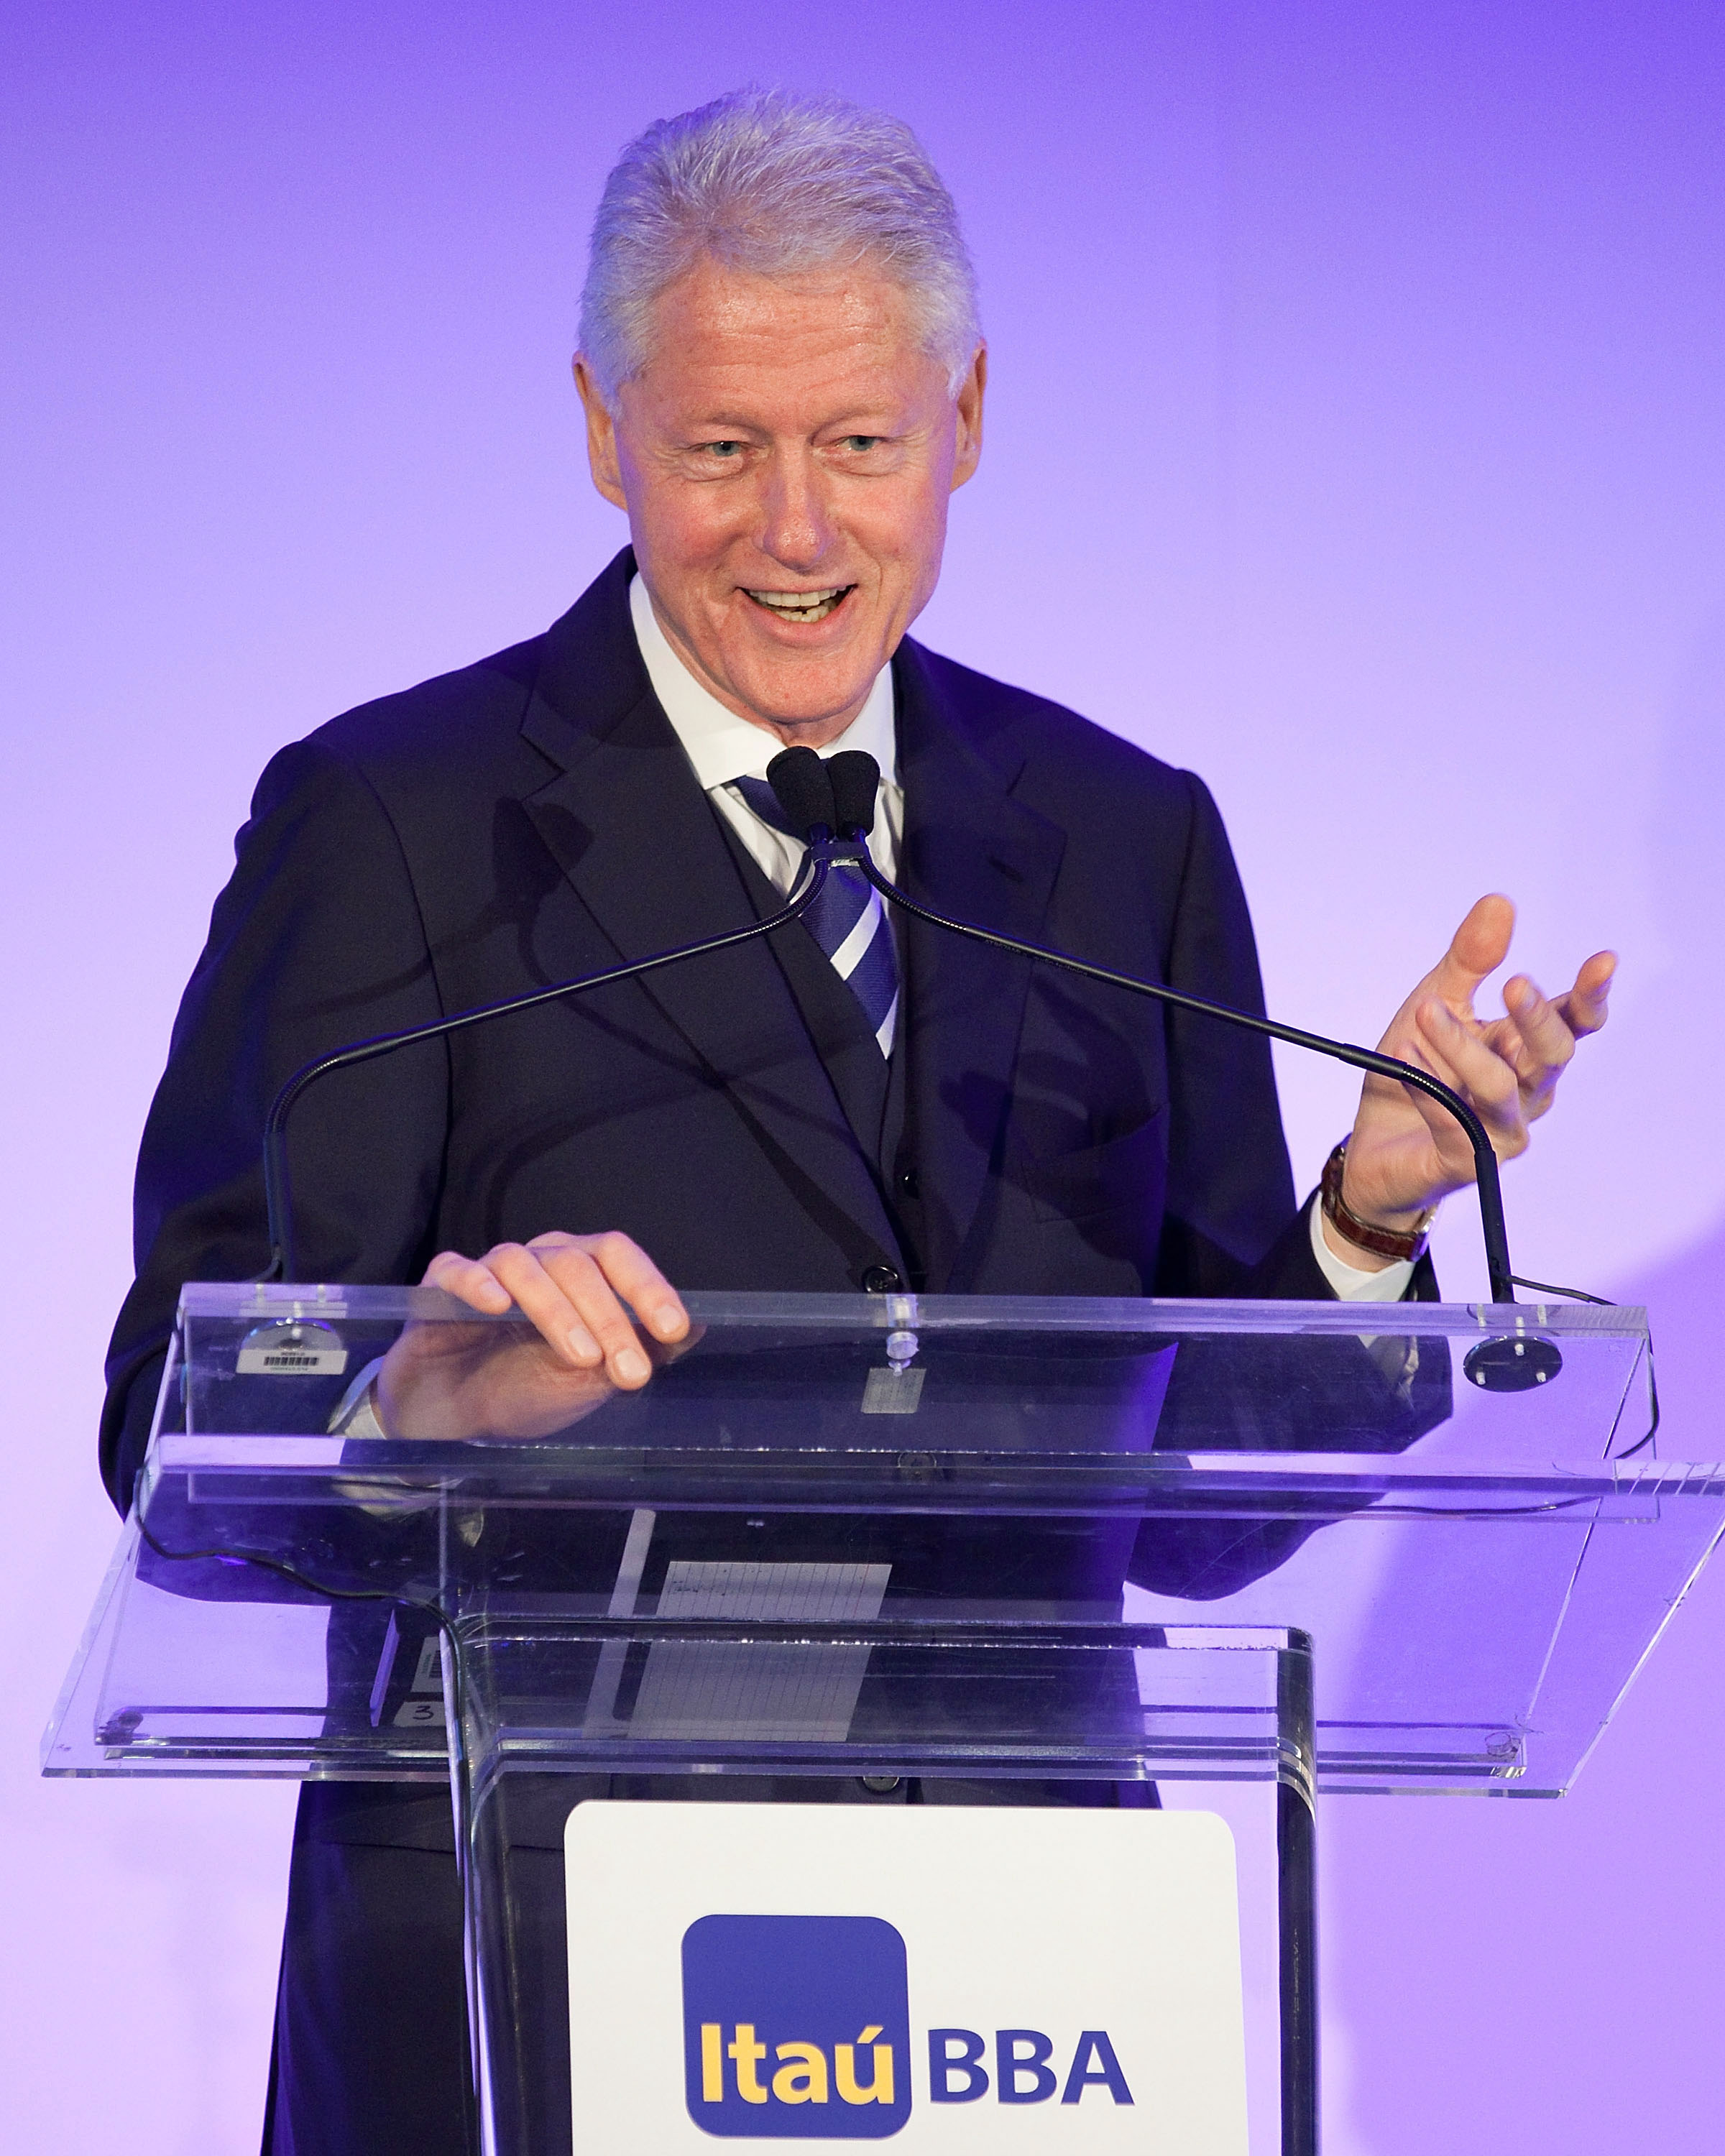 President Bill Clinton Speaking at podium